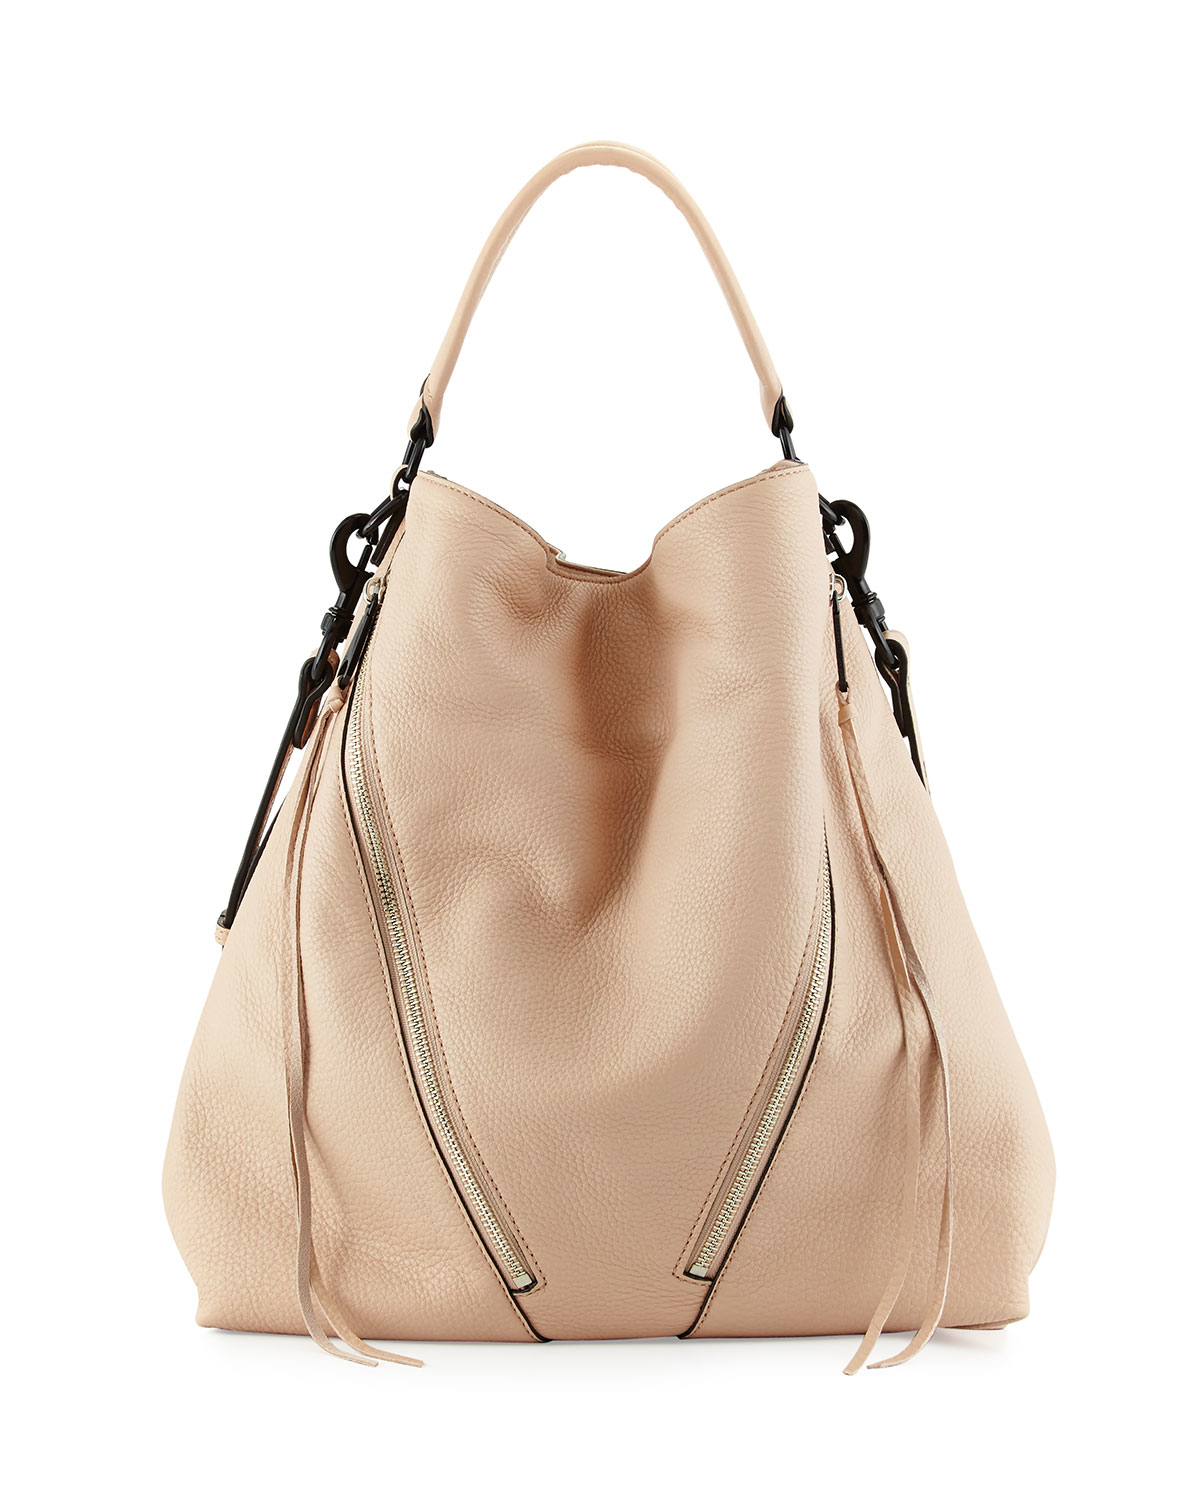 minkoff moto leather hobo bag in beige latte